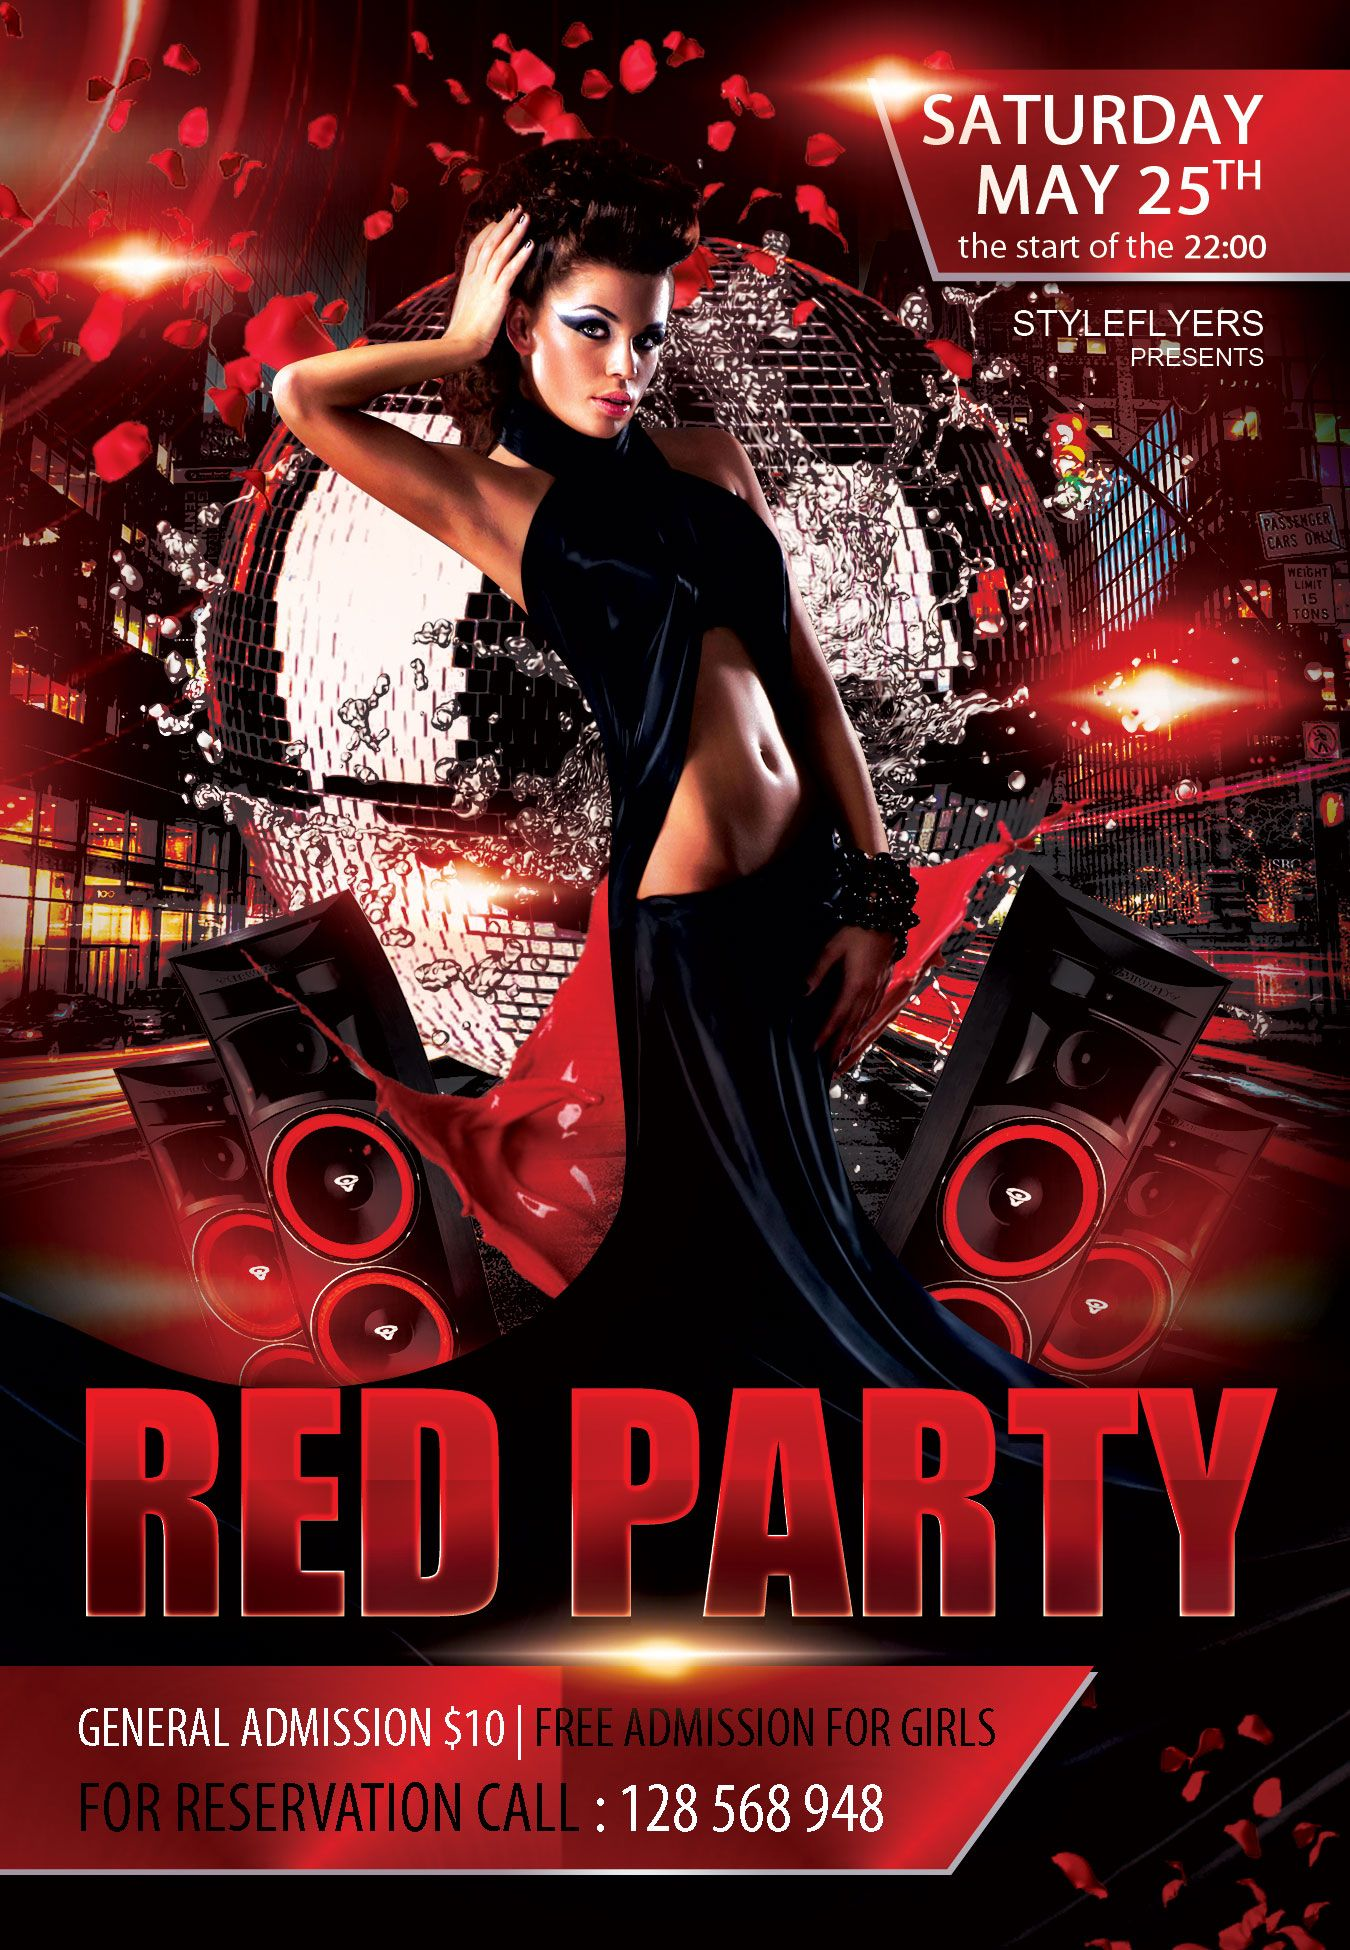 Free Red Party Flyer Psd Template  StyleflyerCom Club Dance